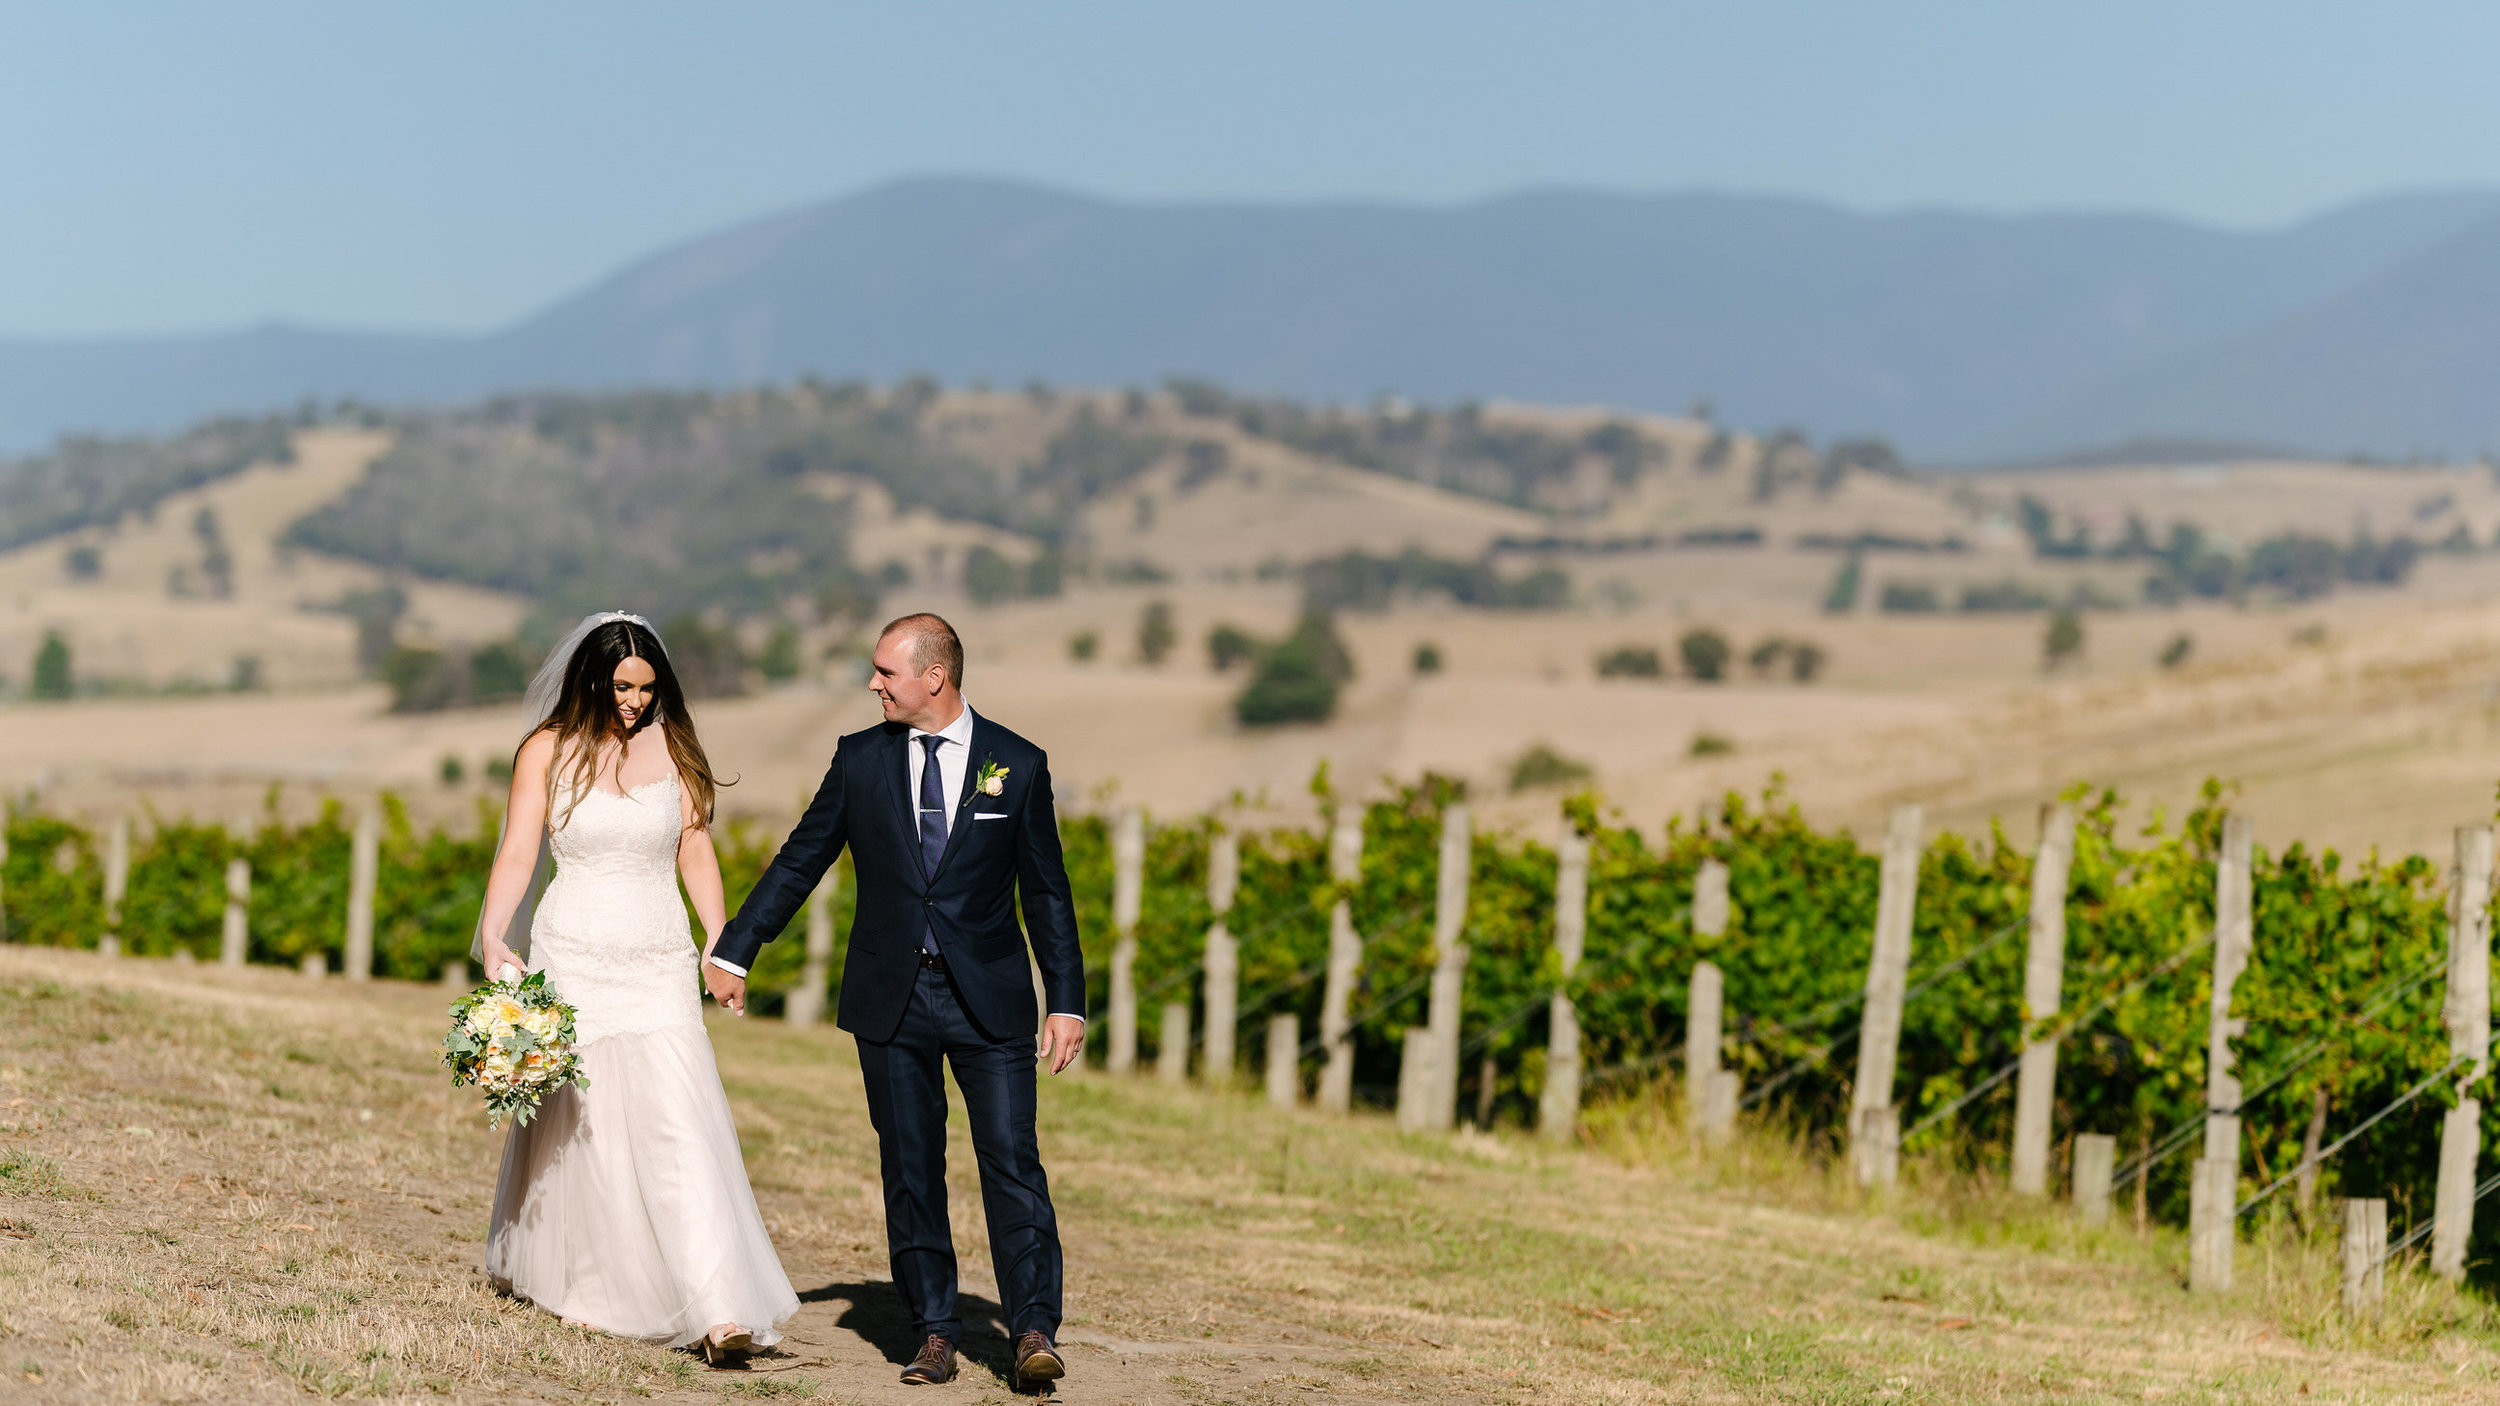 Justin_And_Jim_Photography_Balgownie_Winery_Wedding51.JPG